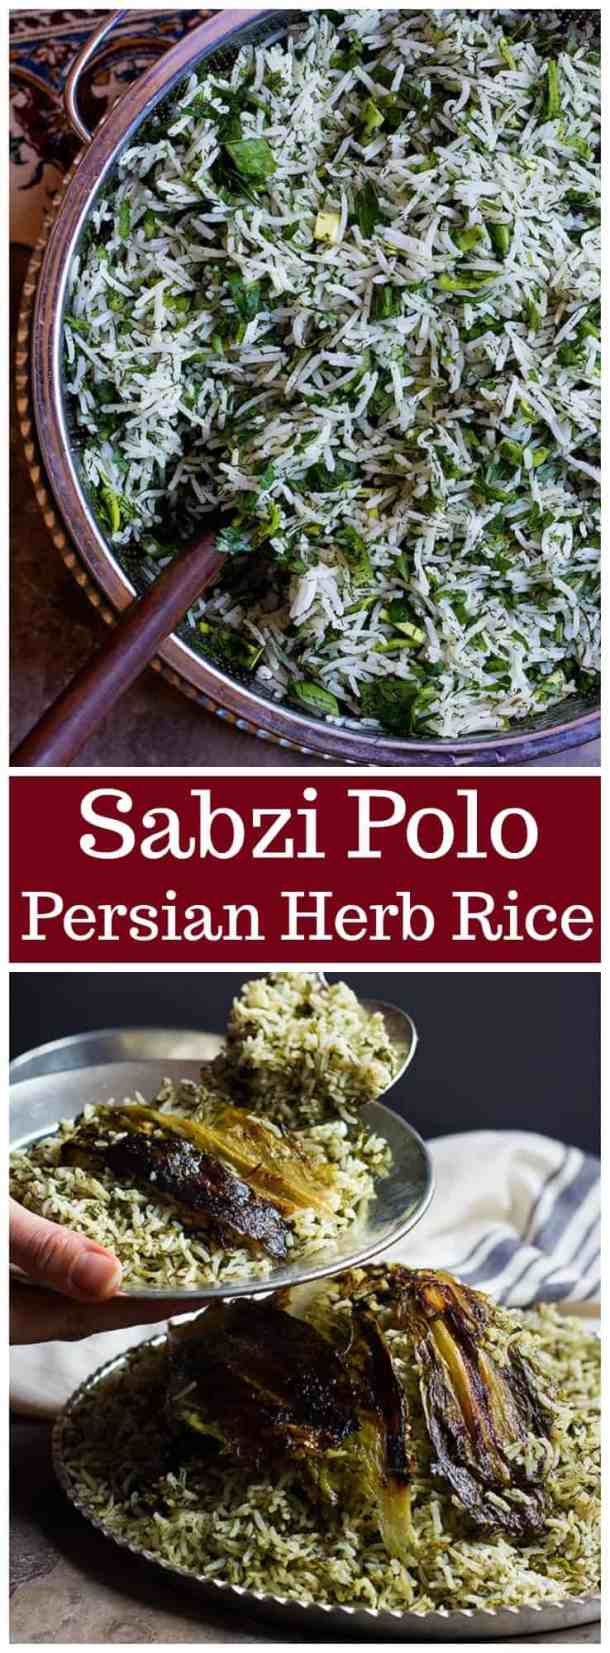 Sabzi Polo | Sabzi Polo Recipe | Herb Rice Recipe | Herb Rice | Persian Rice Recipe | Persian Recipes | Middle Eastern Recipes | Vegan Recipes | Vegetarian Recipes | Side Dishes | Gluten Free Recipes | Persian Food | Nowruz | Persian New Year | Unicornsinthekitchen.com